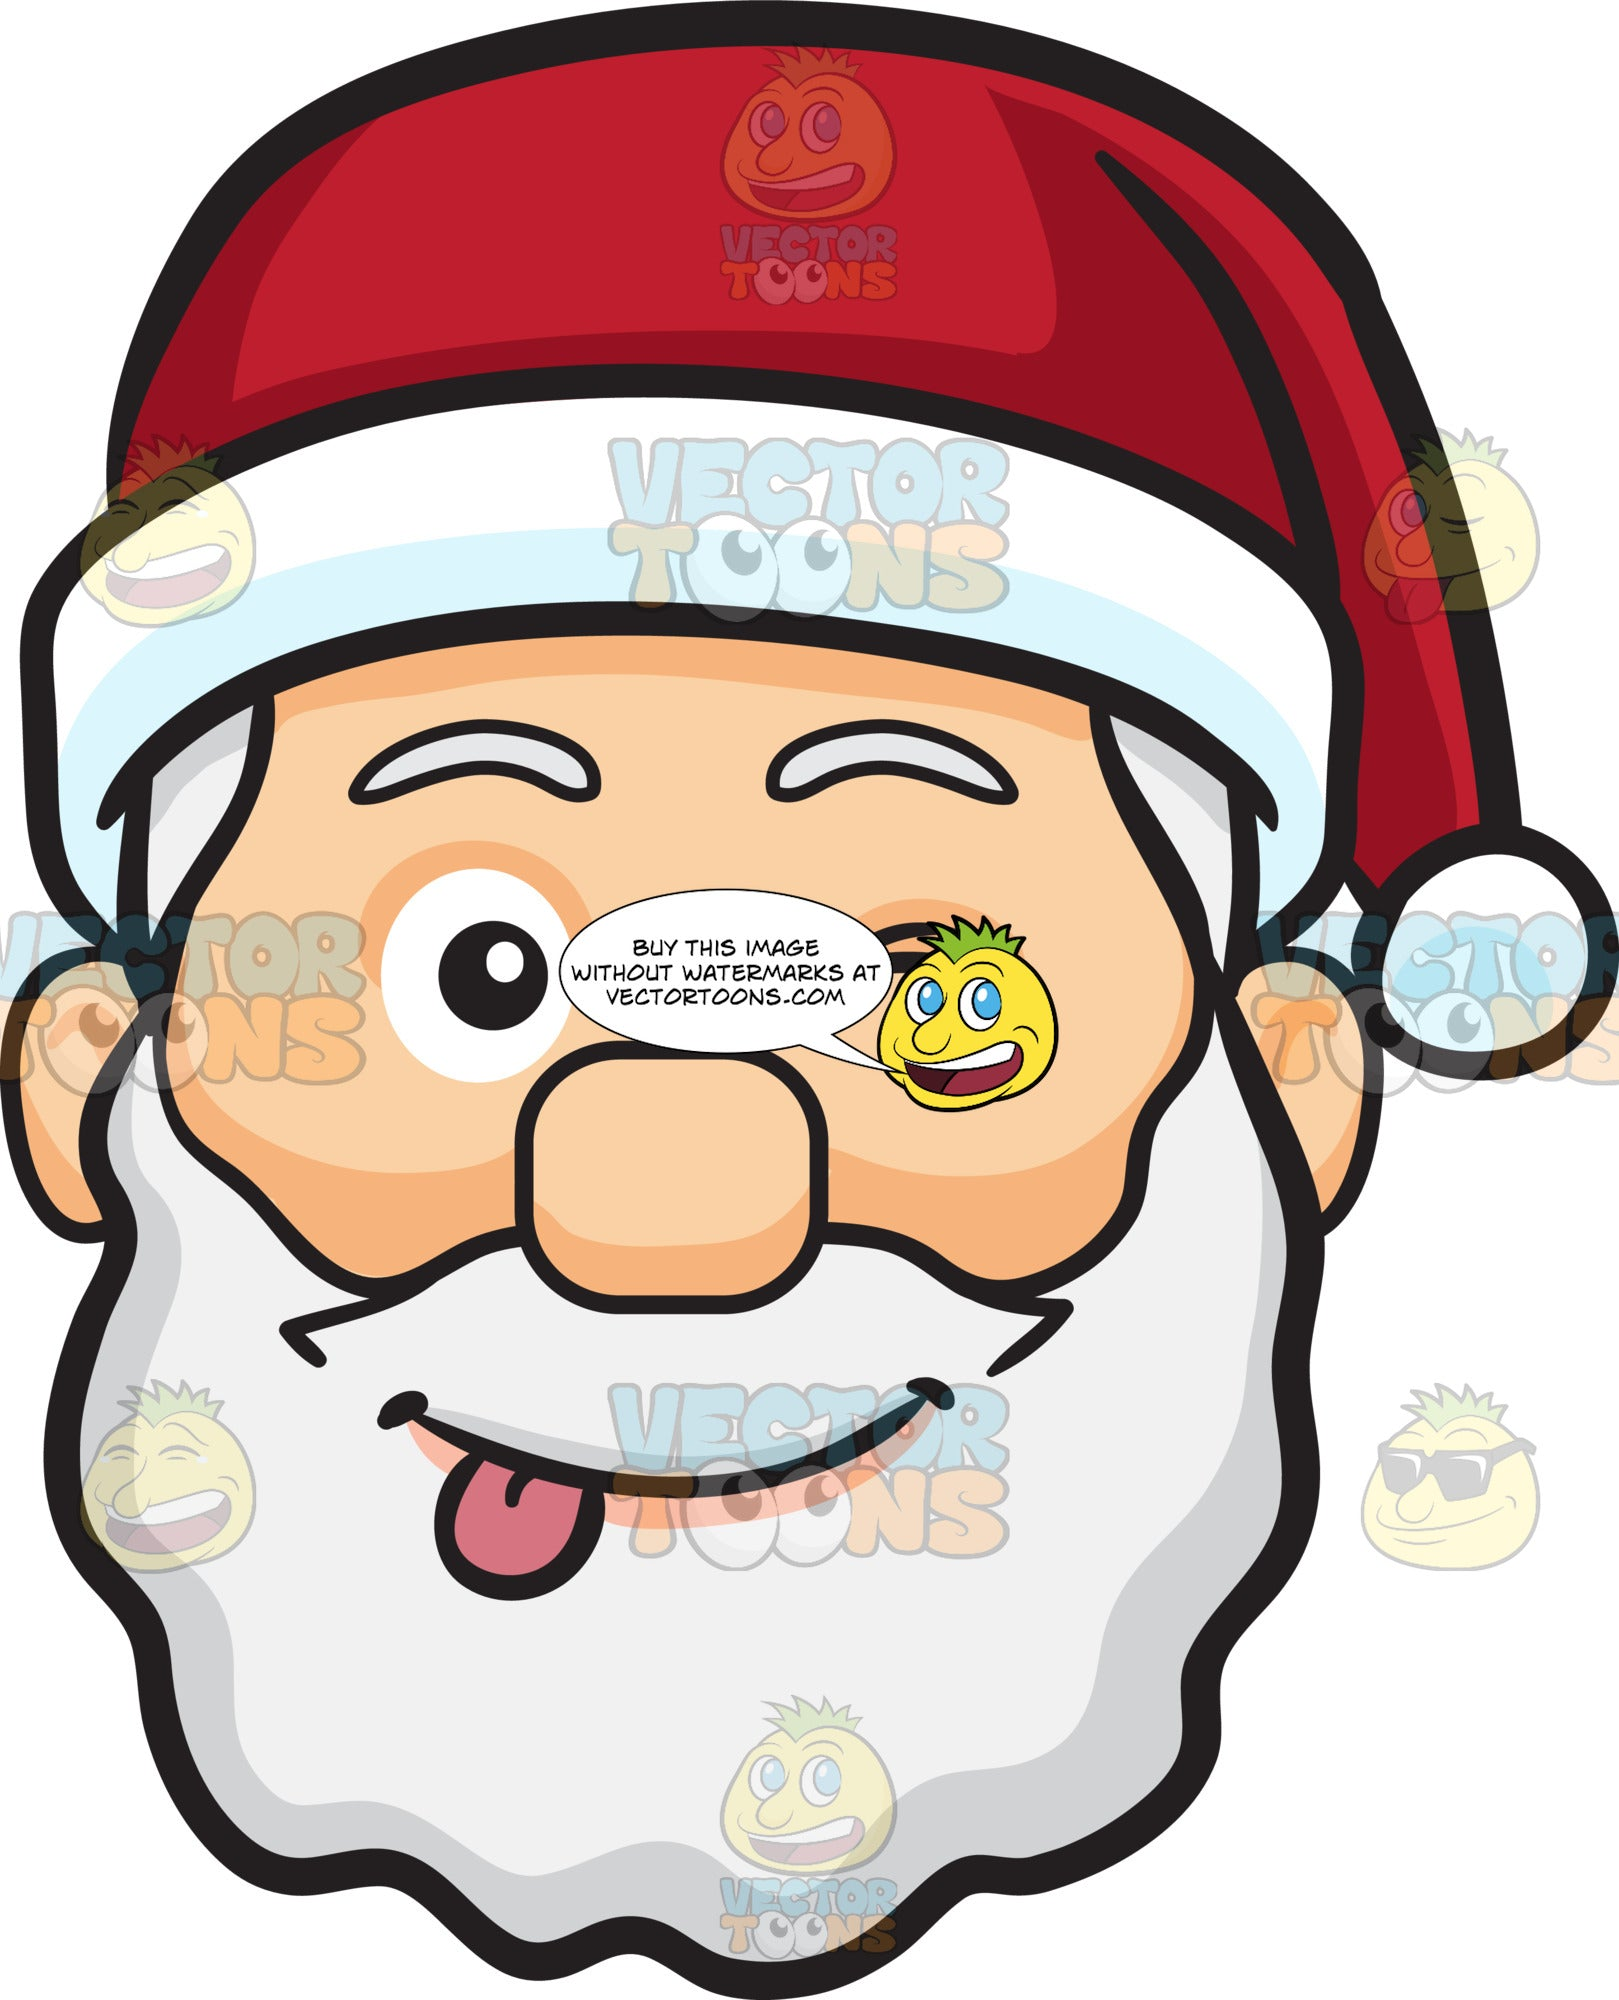 A Teasing Face Of Santa Claus